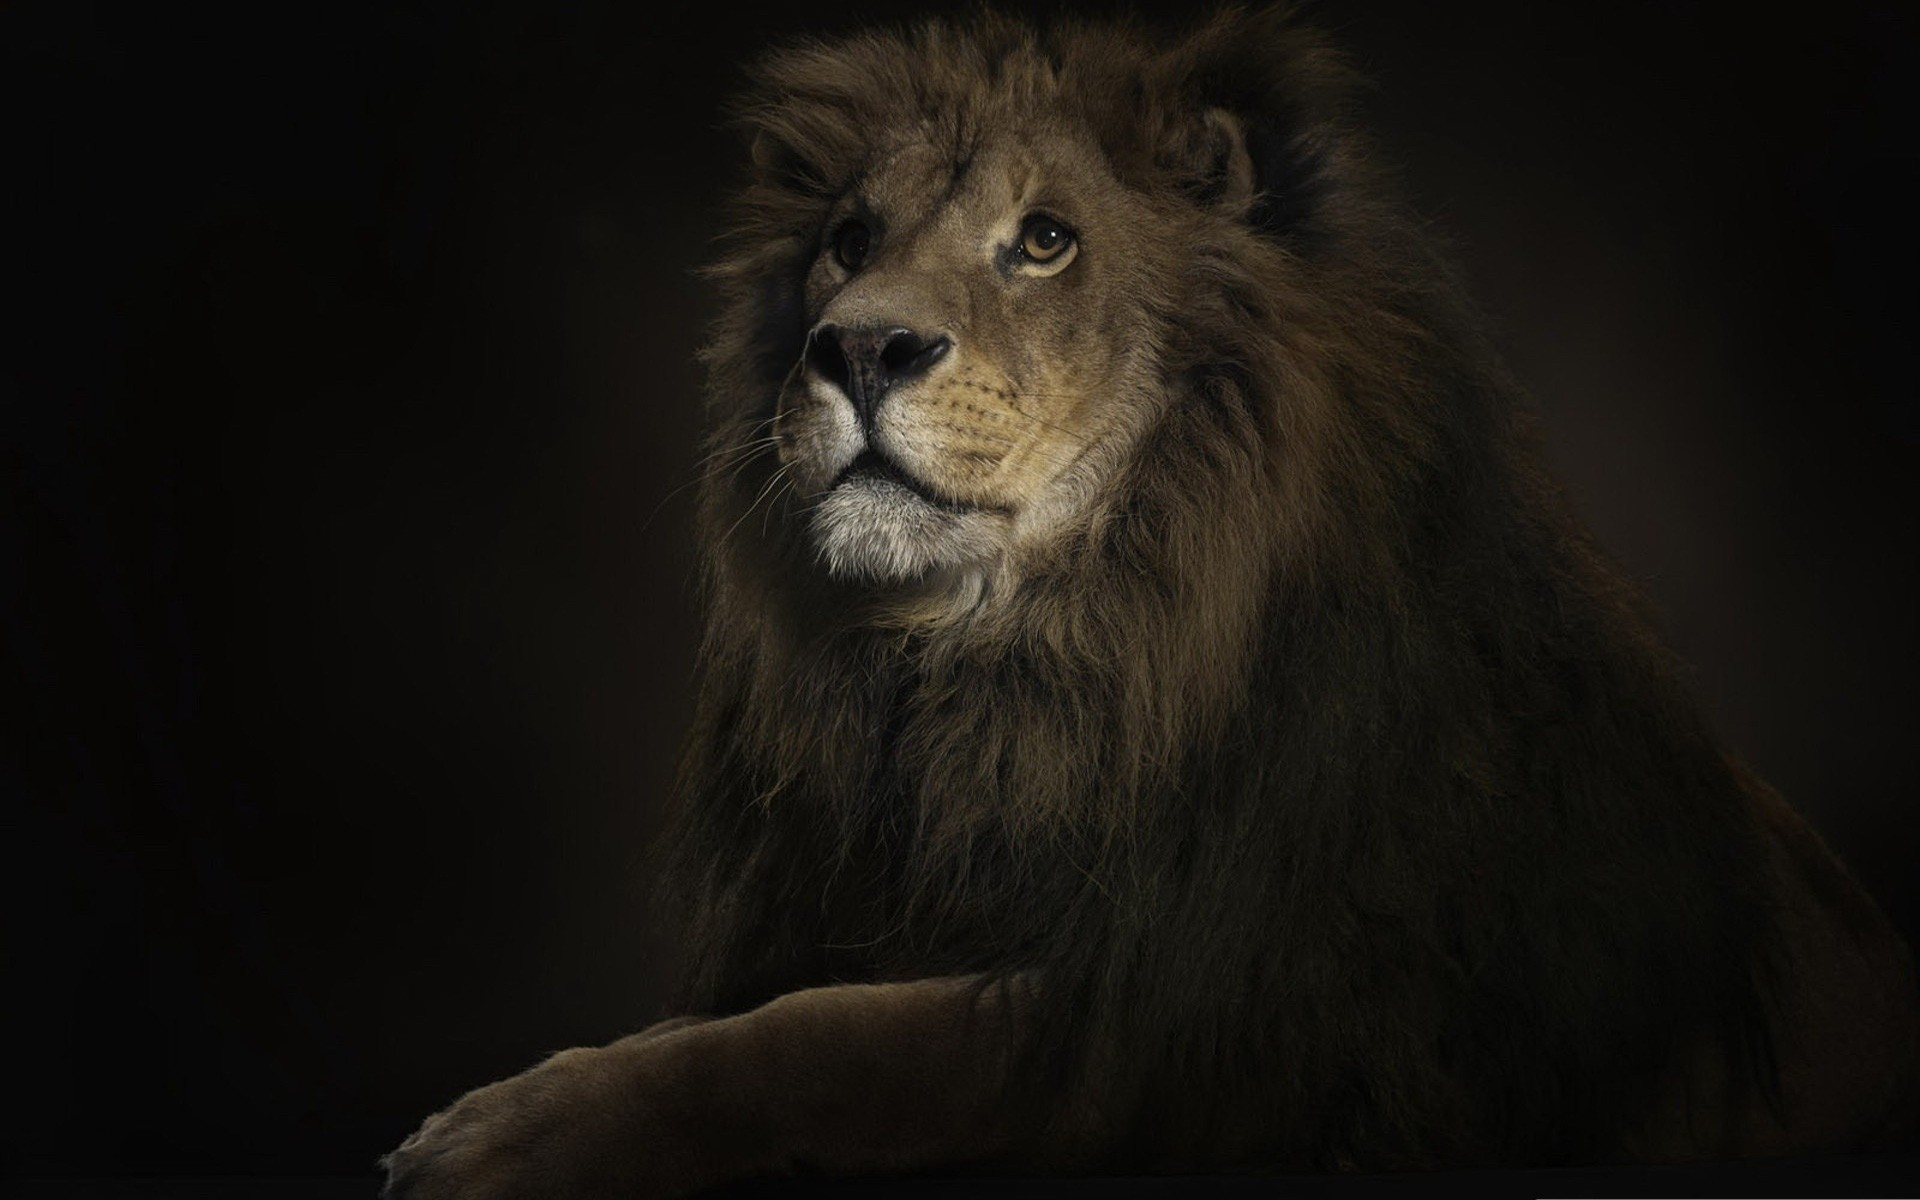 animals mammal cat lion portrait wildlife one